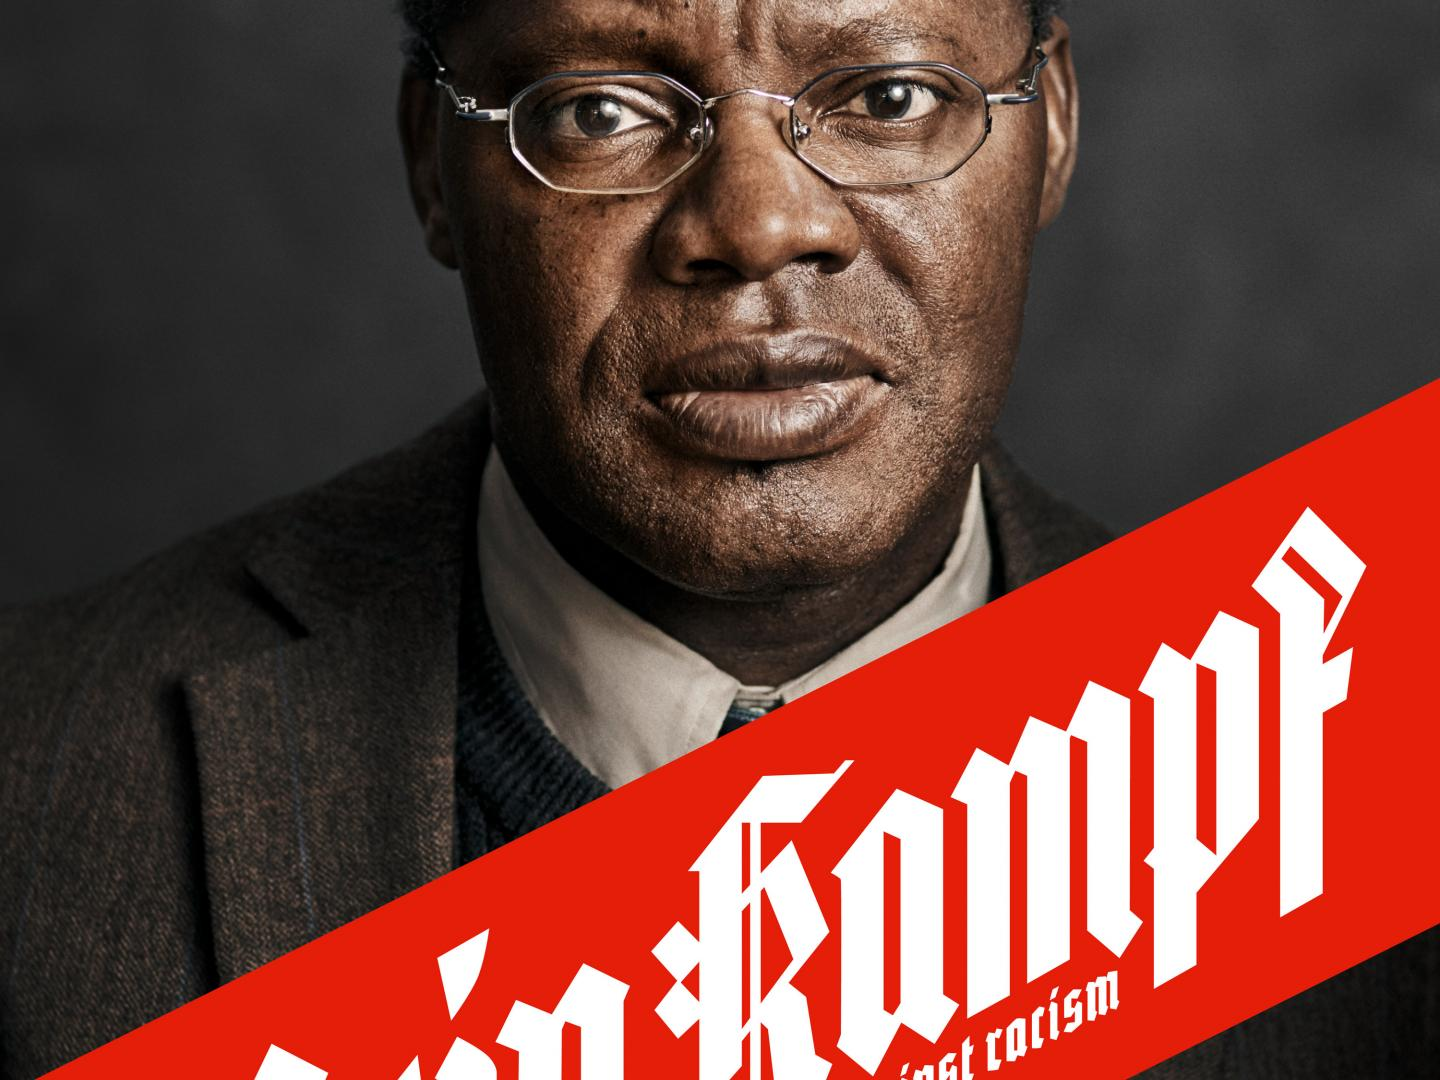 Image for Mein Kampf – against racism/ Print Ad:  José Paca